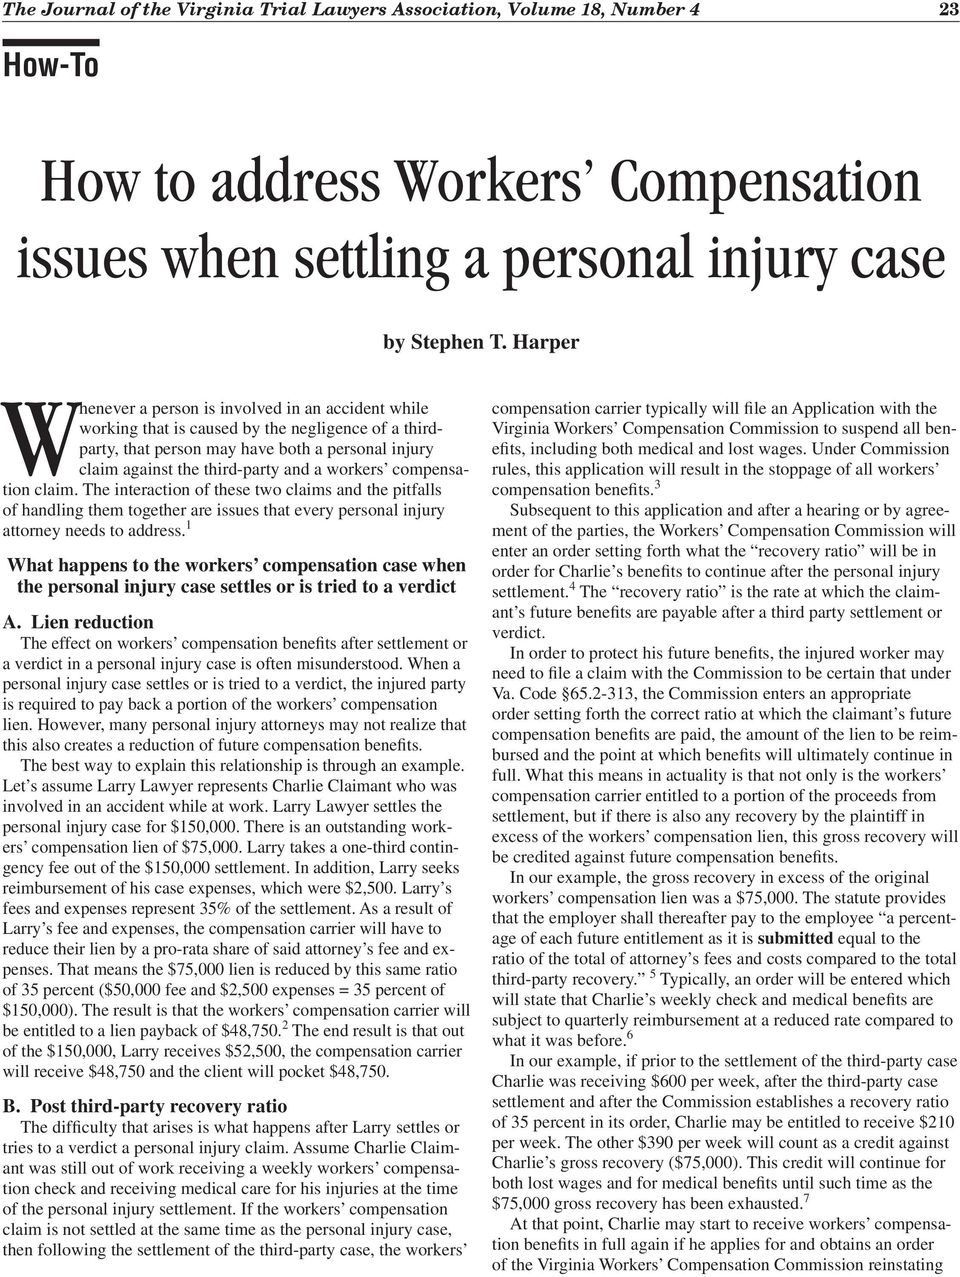 workers compensation claim. The interaction of these two claims and the pitfalls of handling them together are issues that every personal injury attorney needs to address.